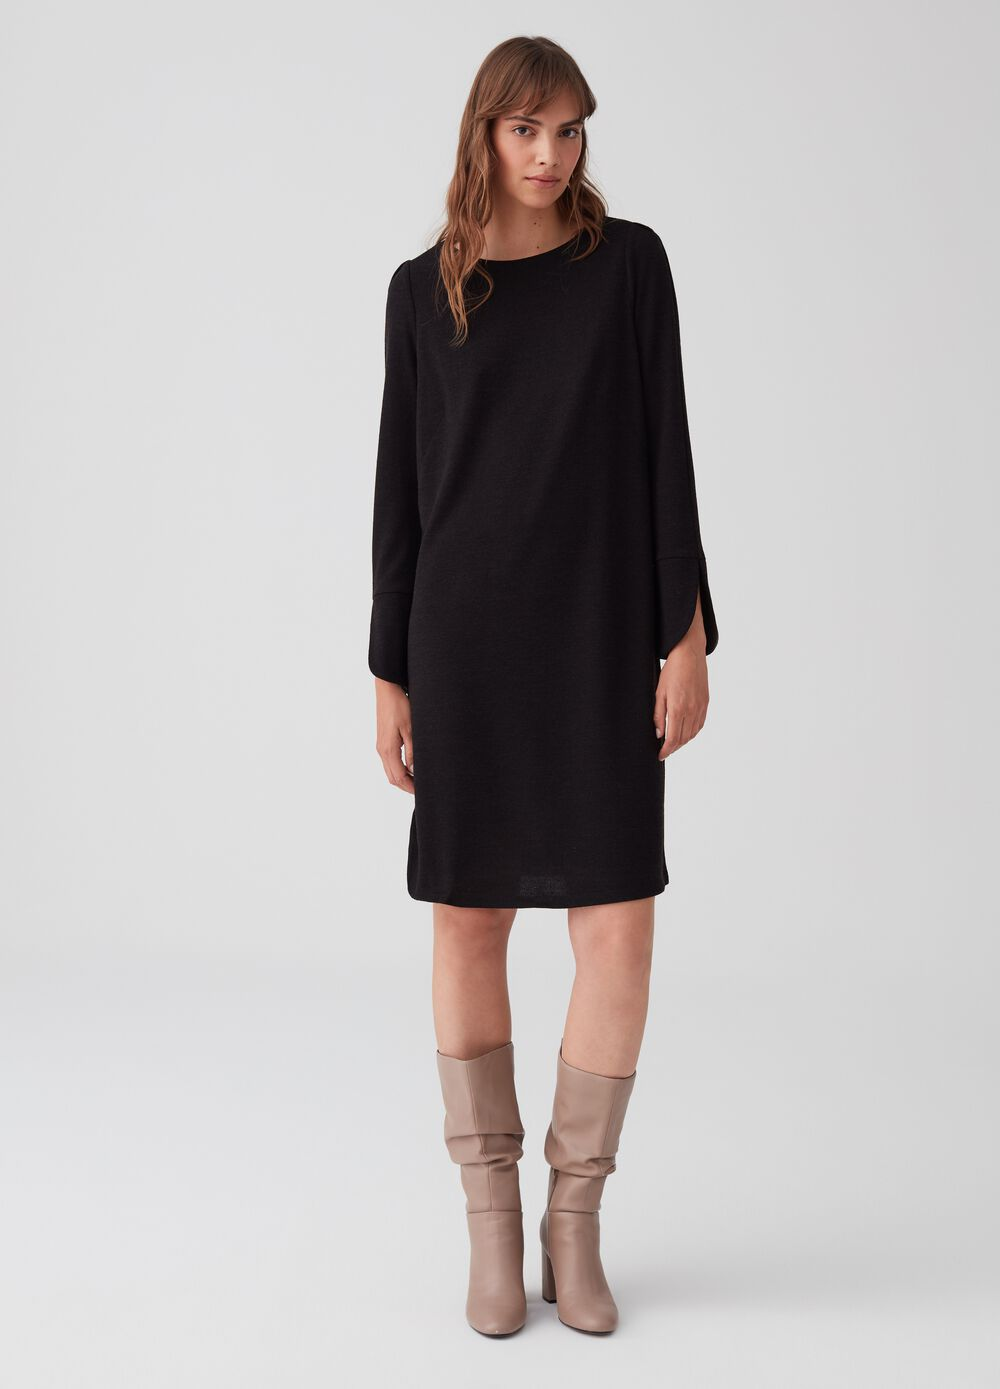 Tunic dress in stretch knit fabric